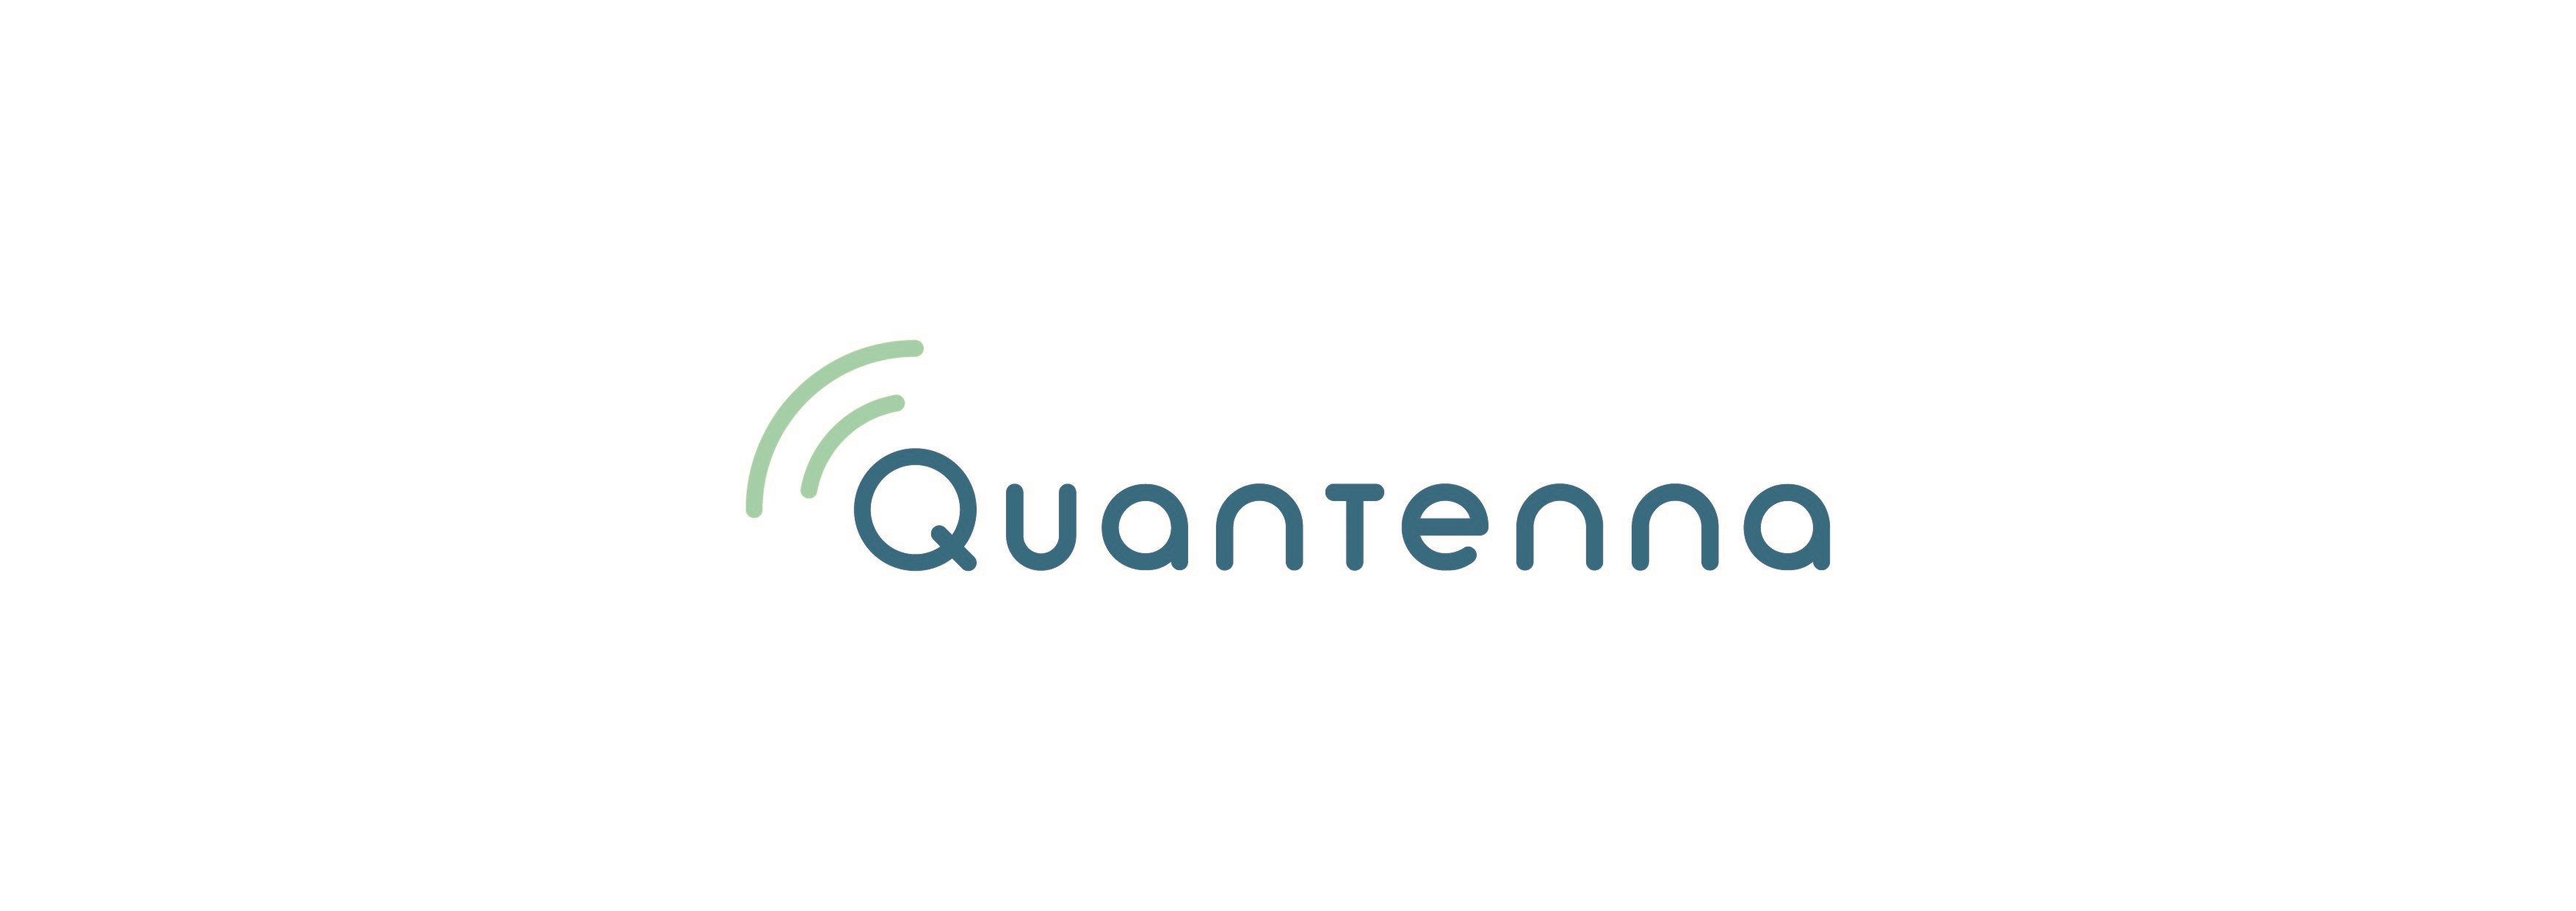 Icotera and Quantenna Collaborate to Deliver Innovative Wi-Fi Gateway Solutions